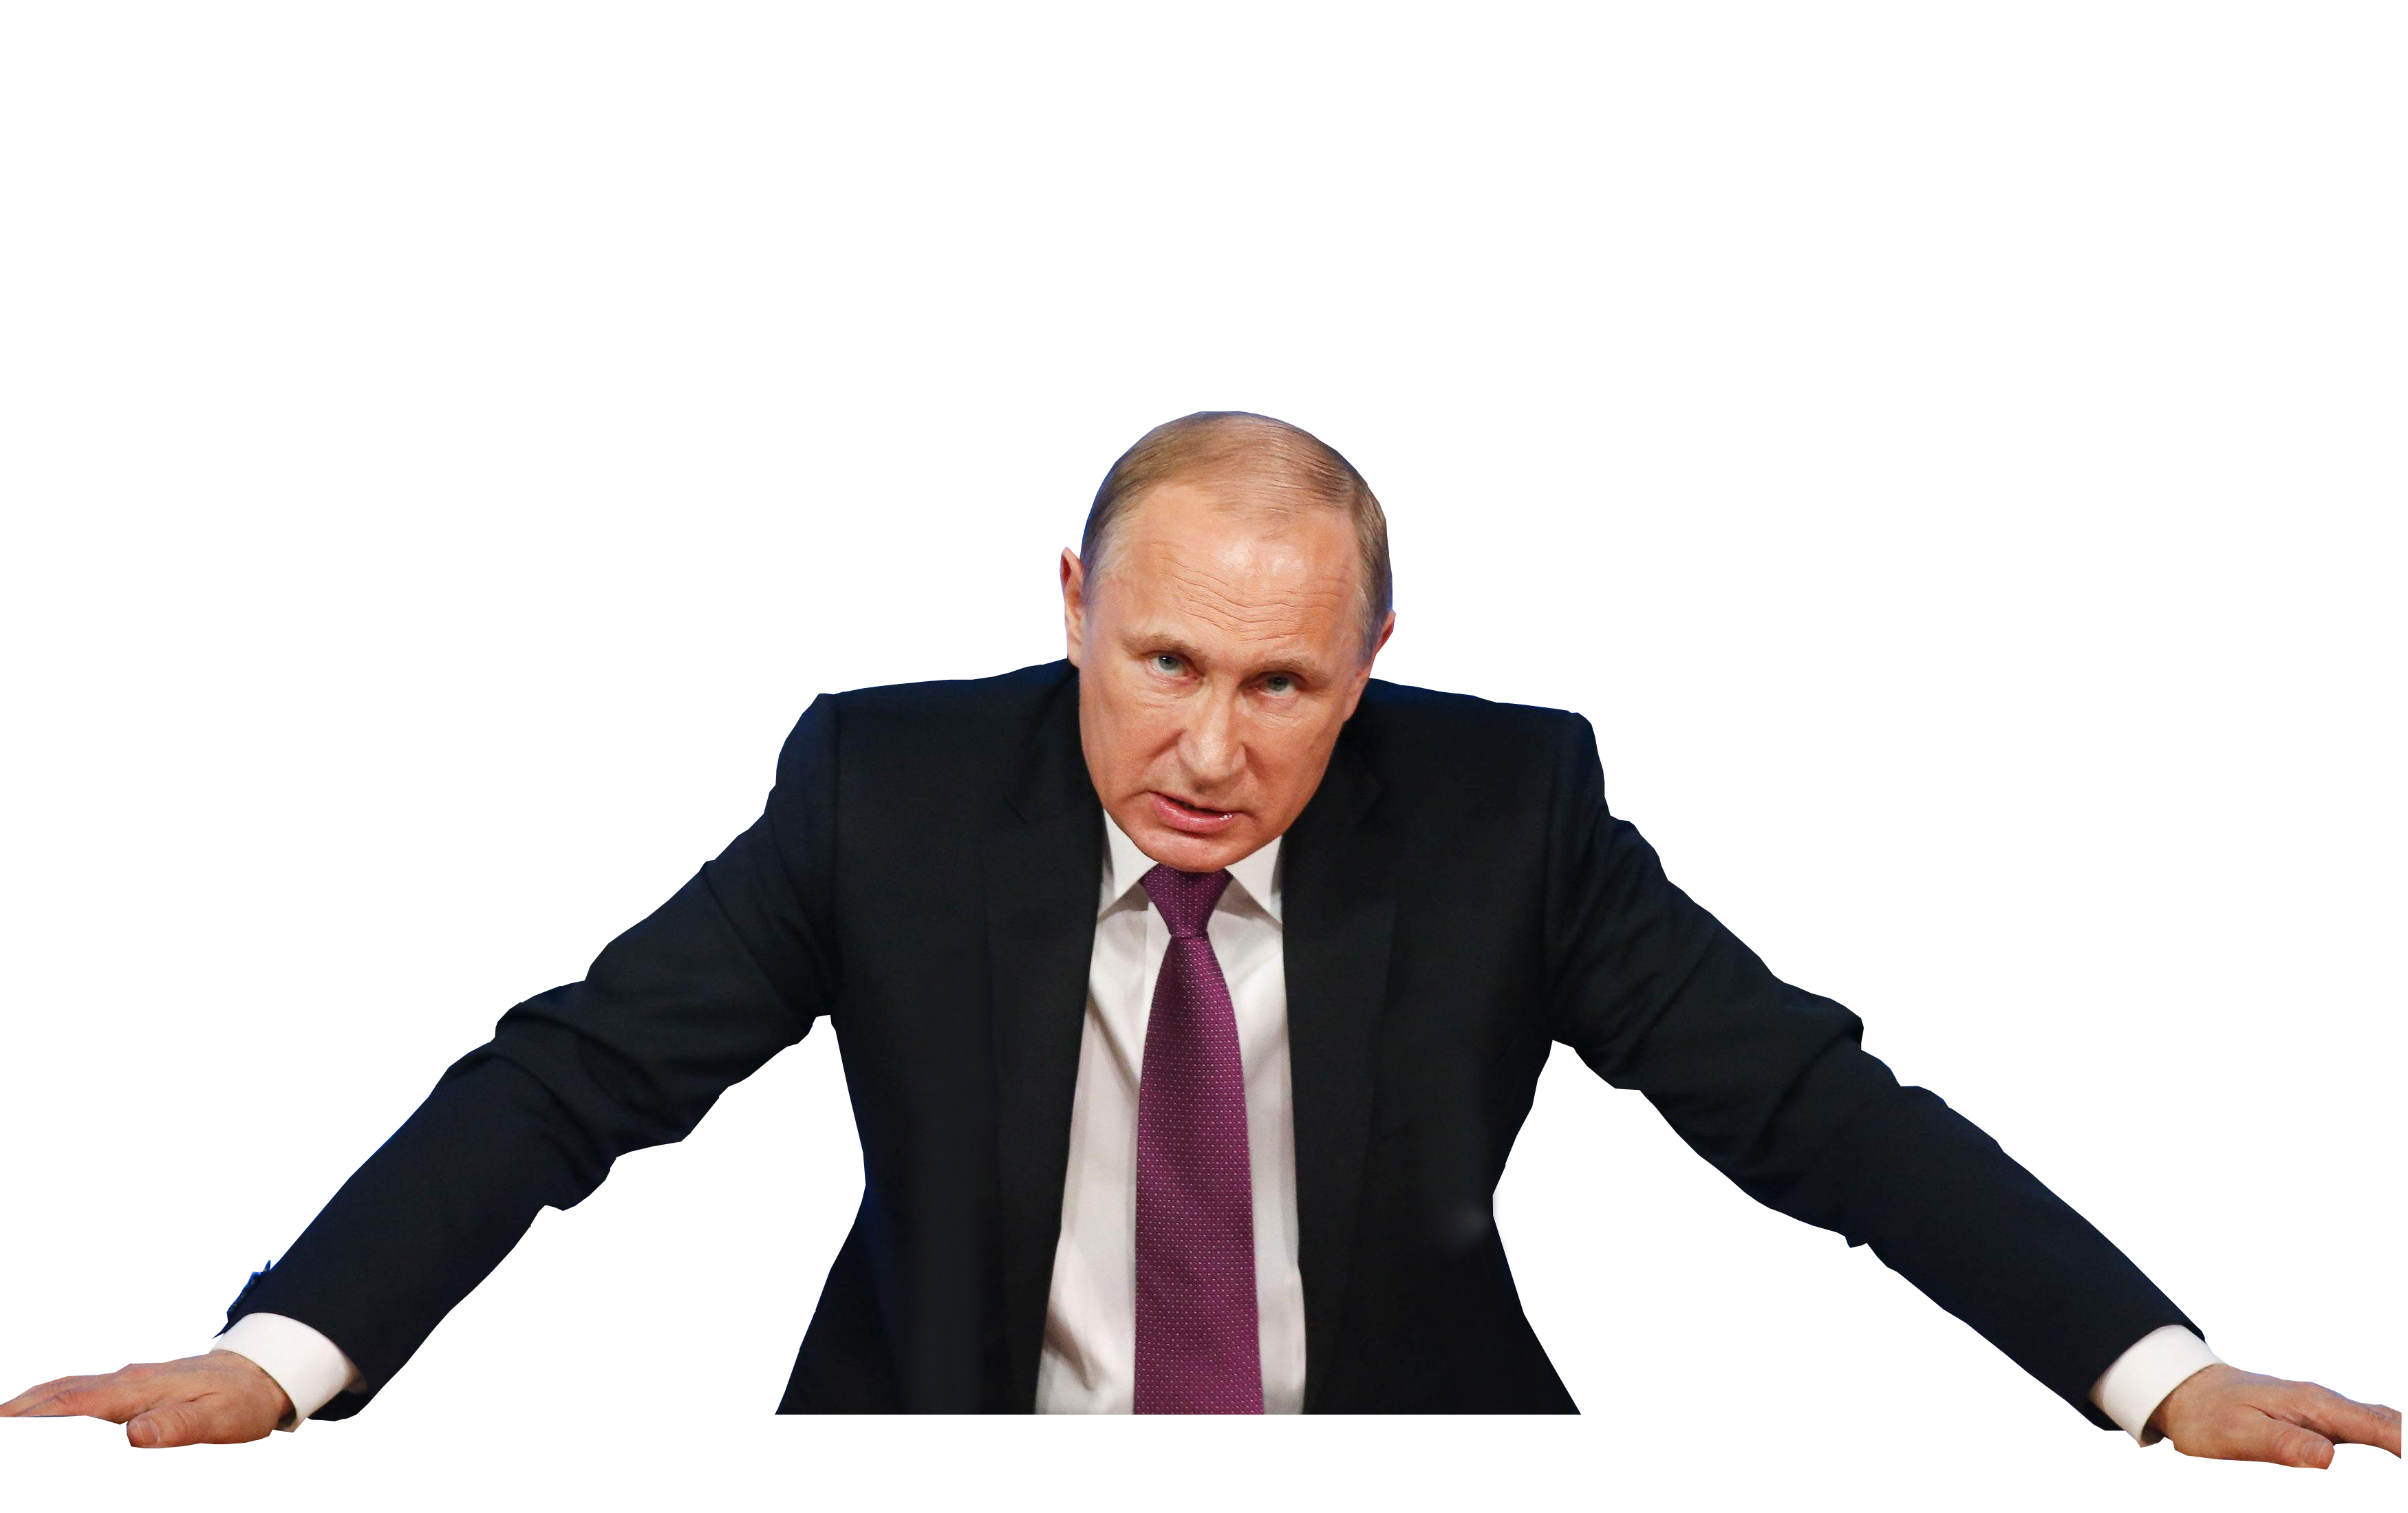 Free download of Vladimir Putin PNG Picture